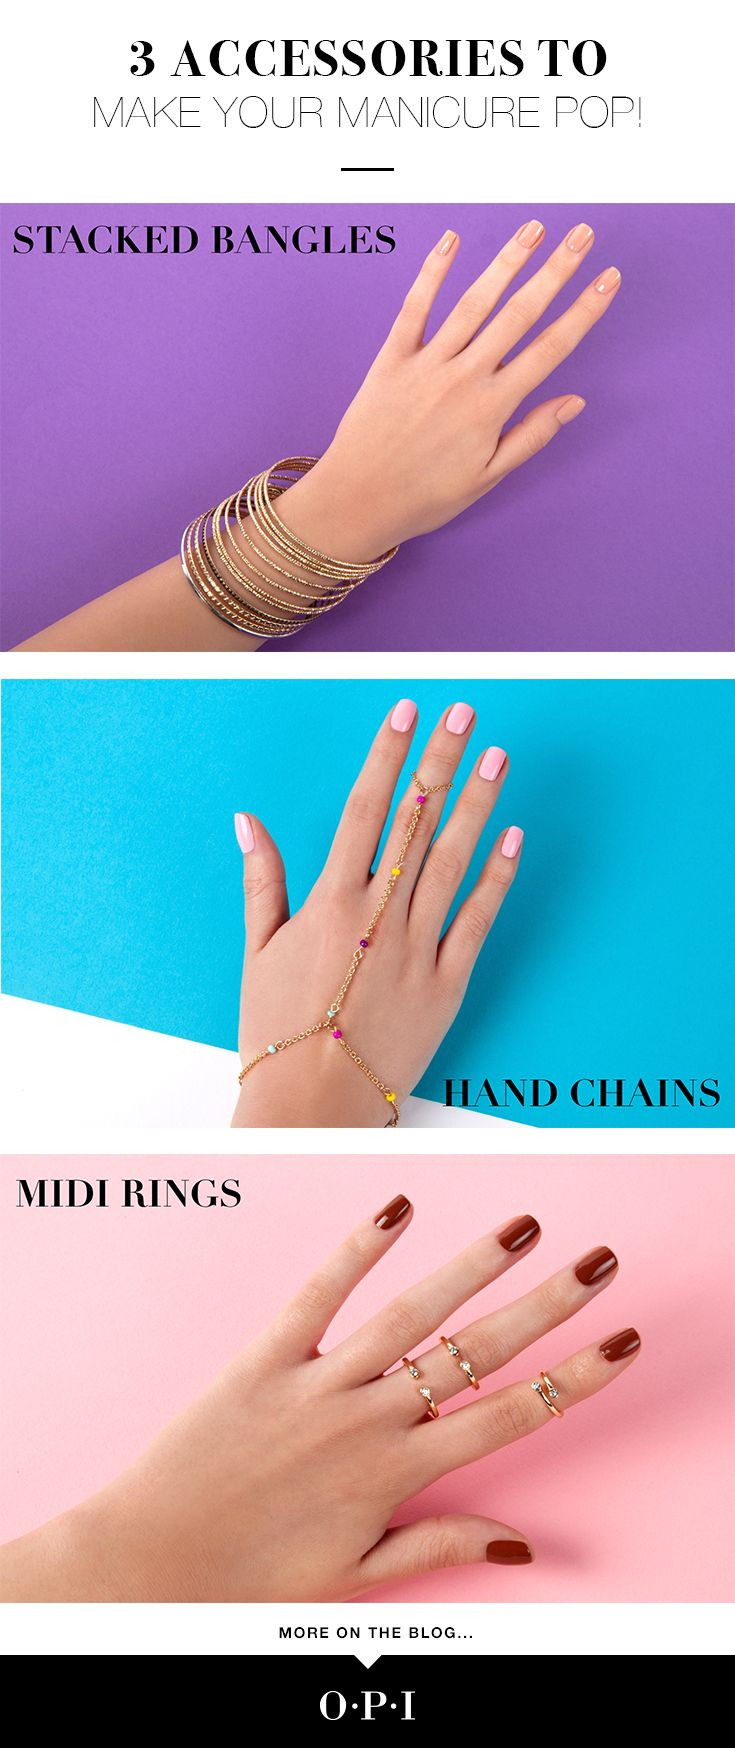 Fashion accessory blogs - A Good Manicure Should Never Go Unnoticed Here Are Three Accessories To Make Your Mani